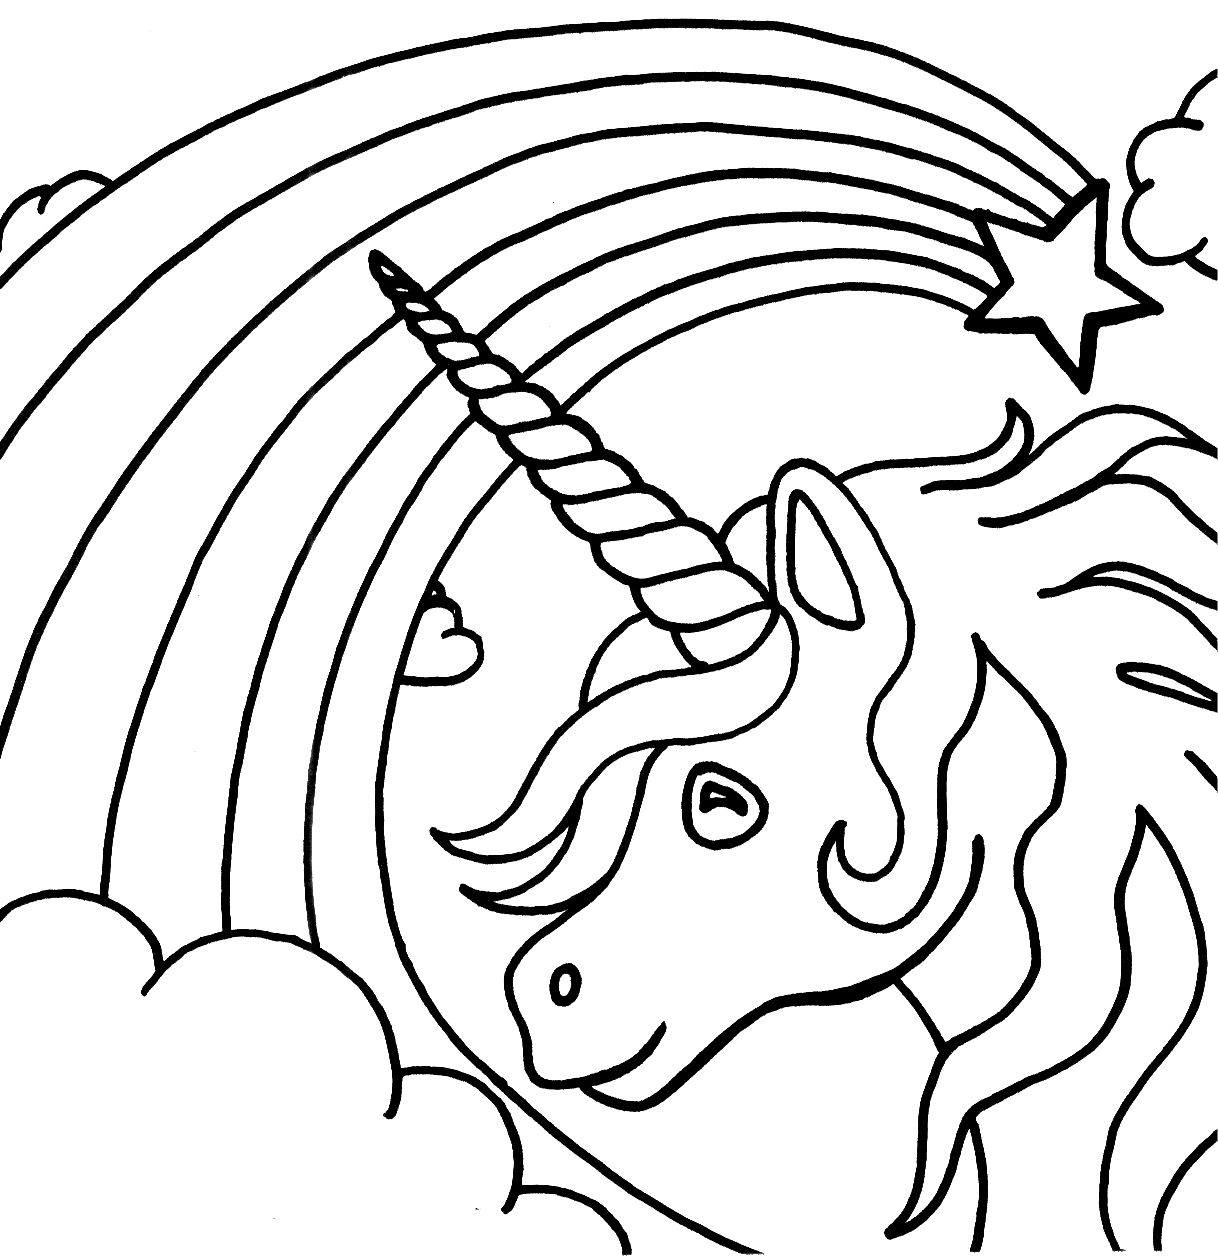 Coloring Sheets Free Unicorn Coloring Pages Emoji Coloring Pages Dog Coloring Page